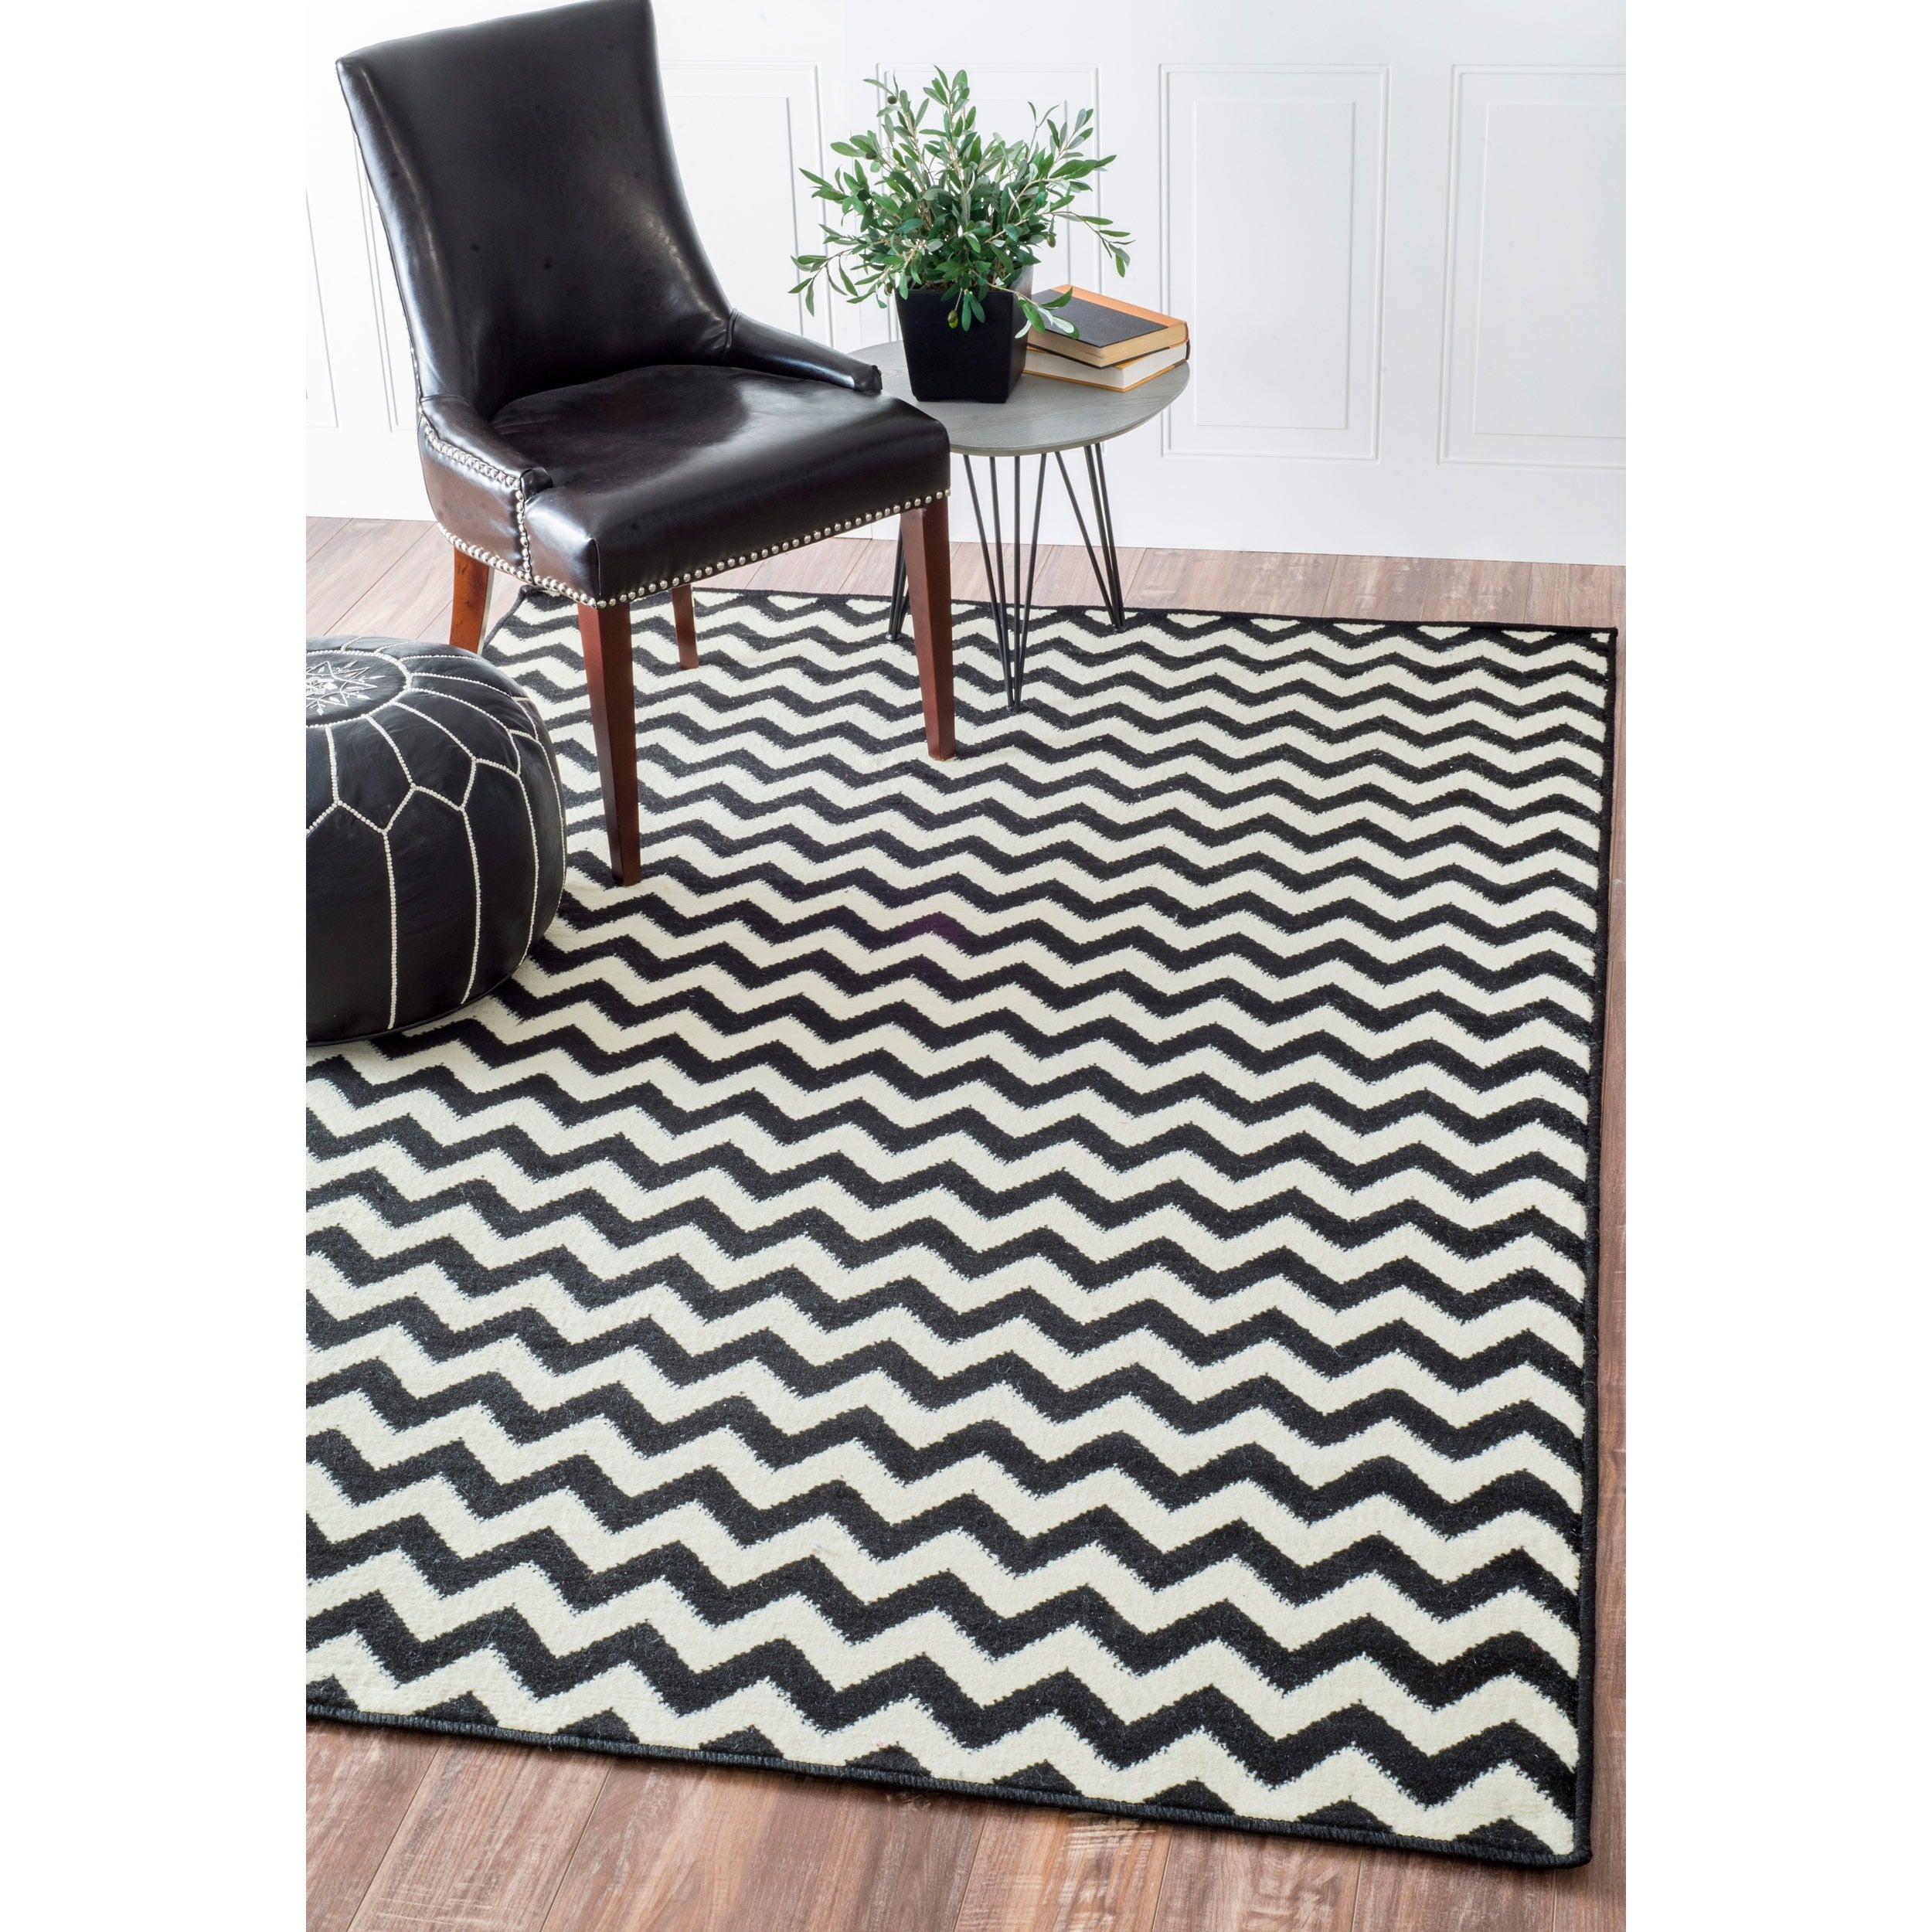 Williamsburg Bedford Chevron Zebra Black/Ivory Rug (4' x 6') - Thumbnail 0